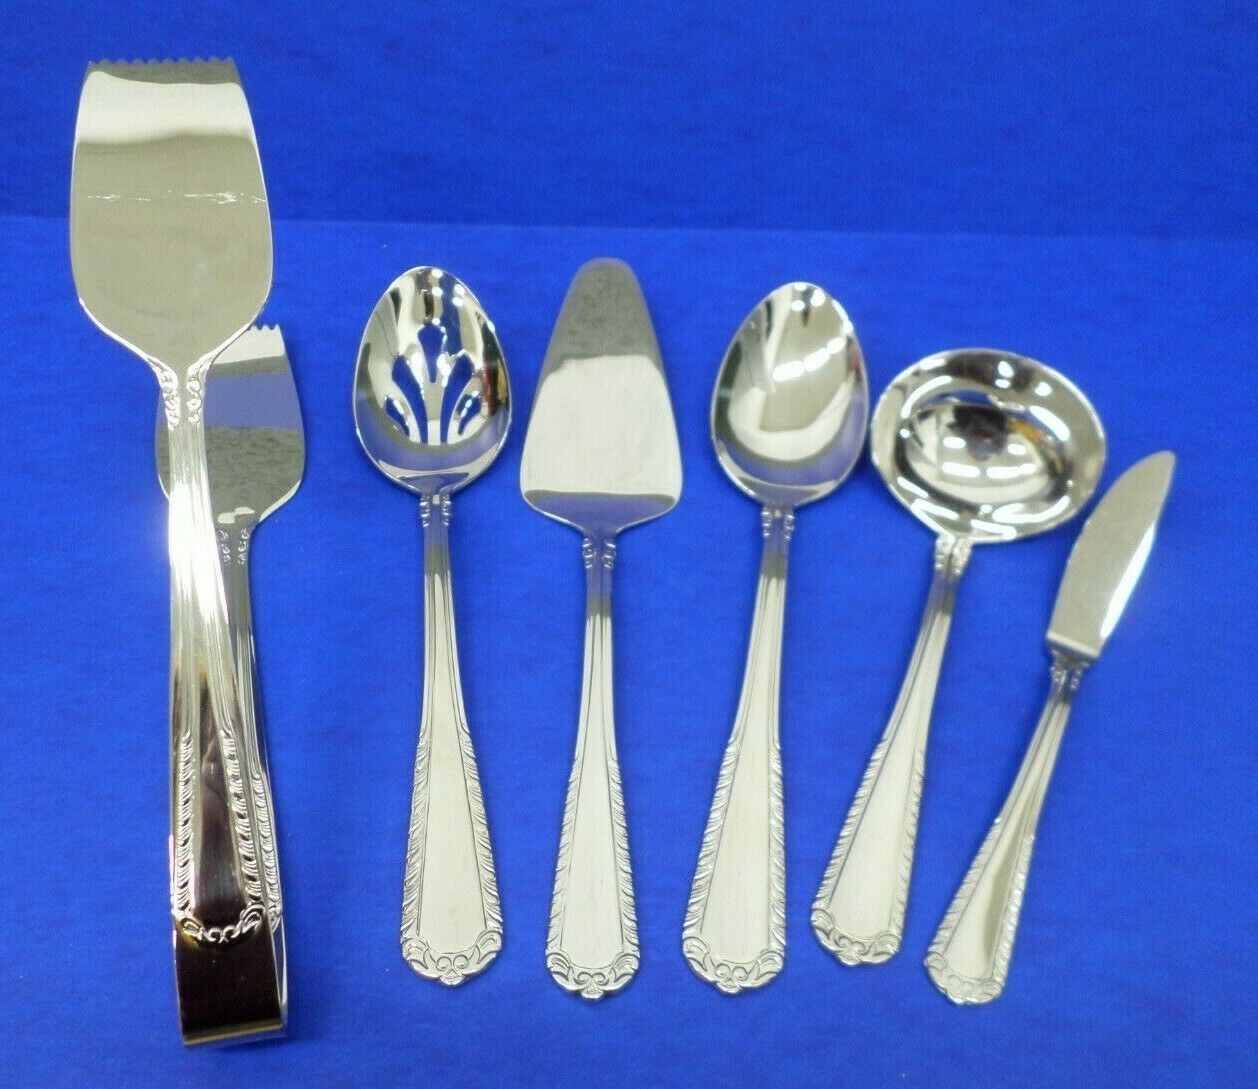 6 - Reed & Barton SURREY Glossy 18 10 Stainless Flatware HOSTESS SERVING PIECES